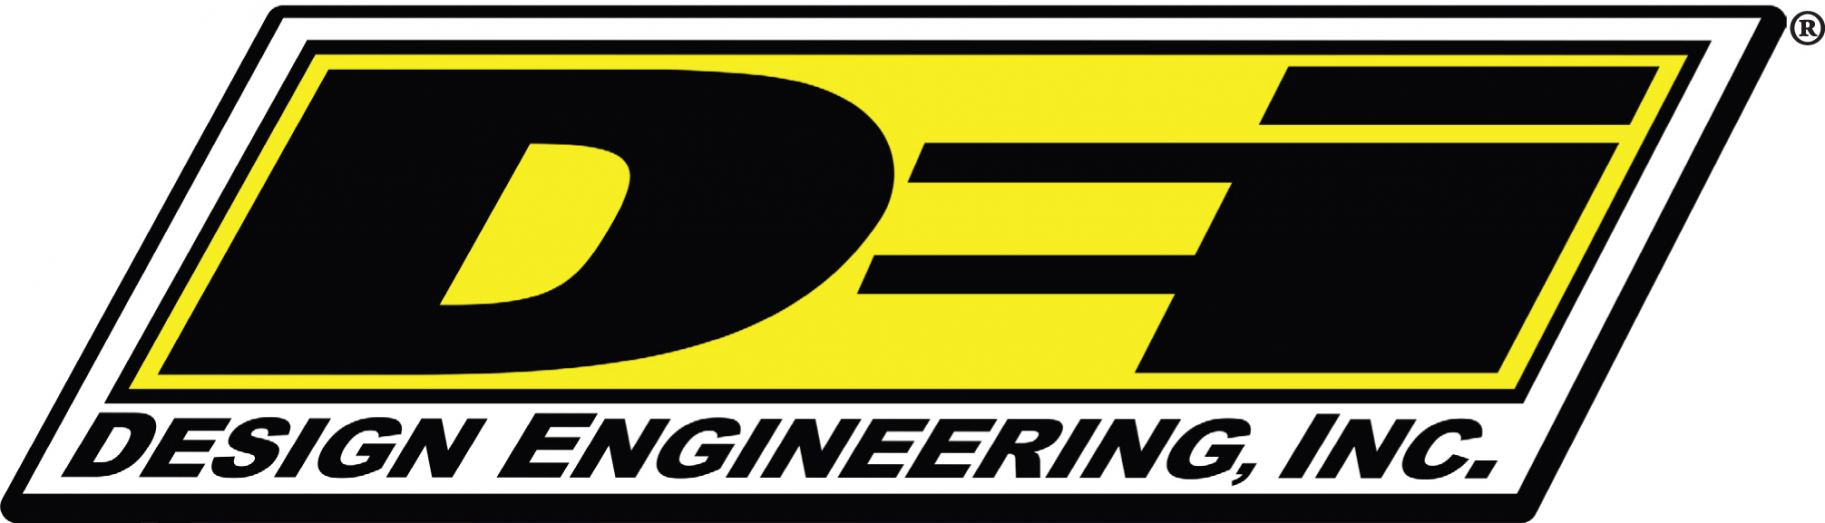 Design Engineering Inc. logo